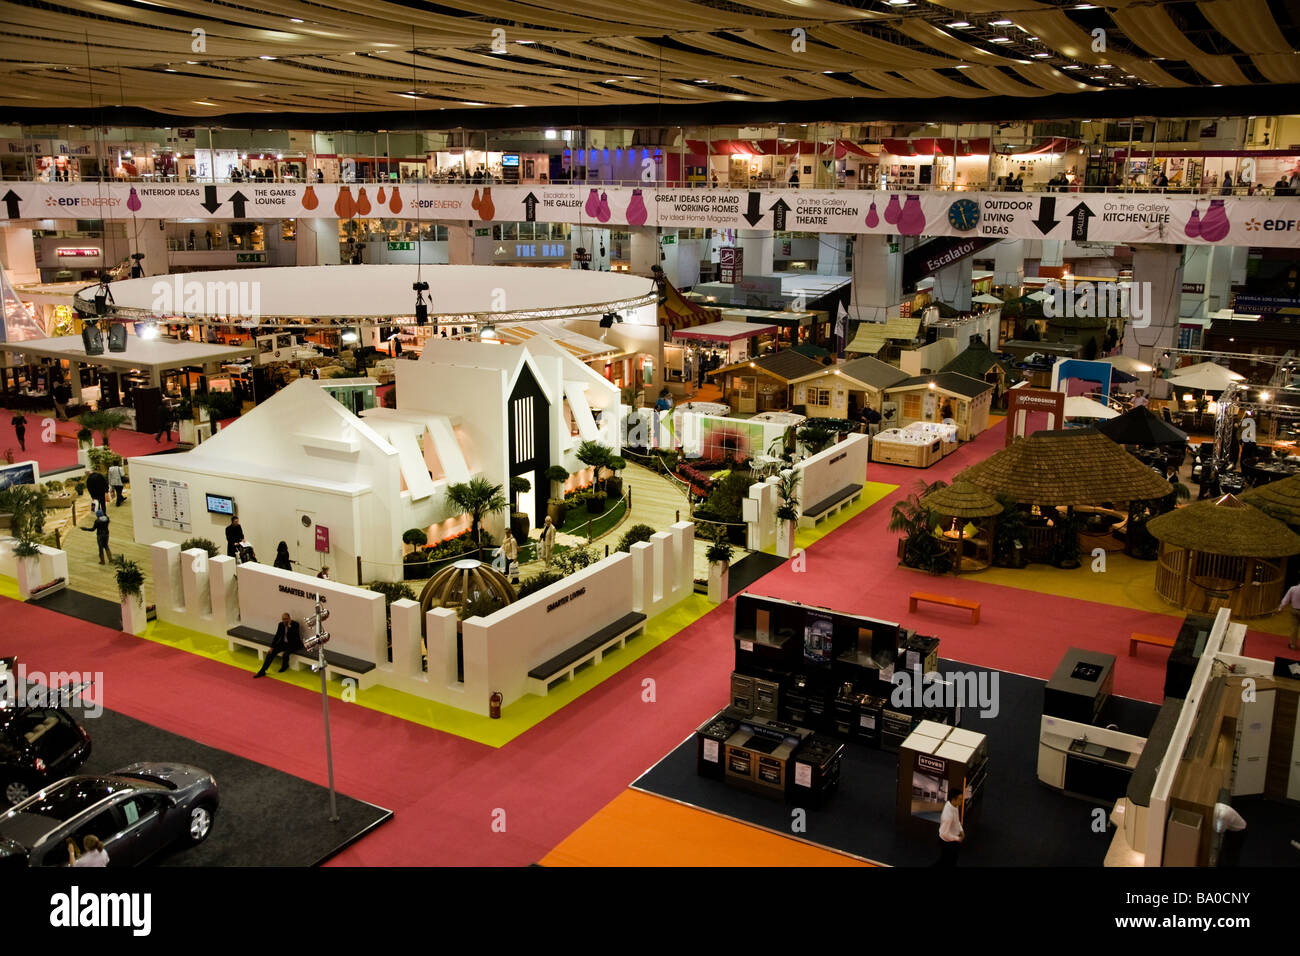 view over exhibitors stands at the ideal home show exhibition